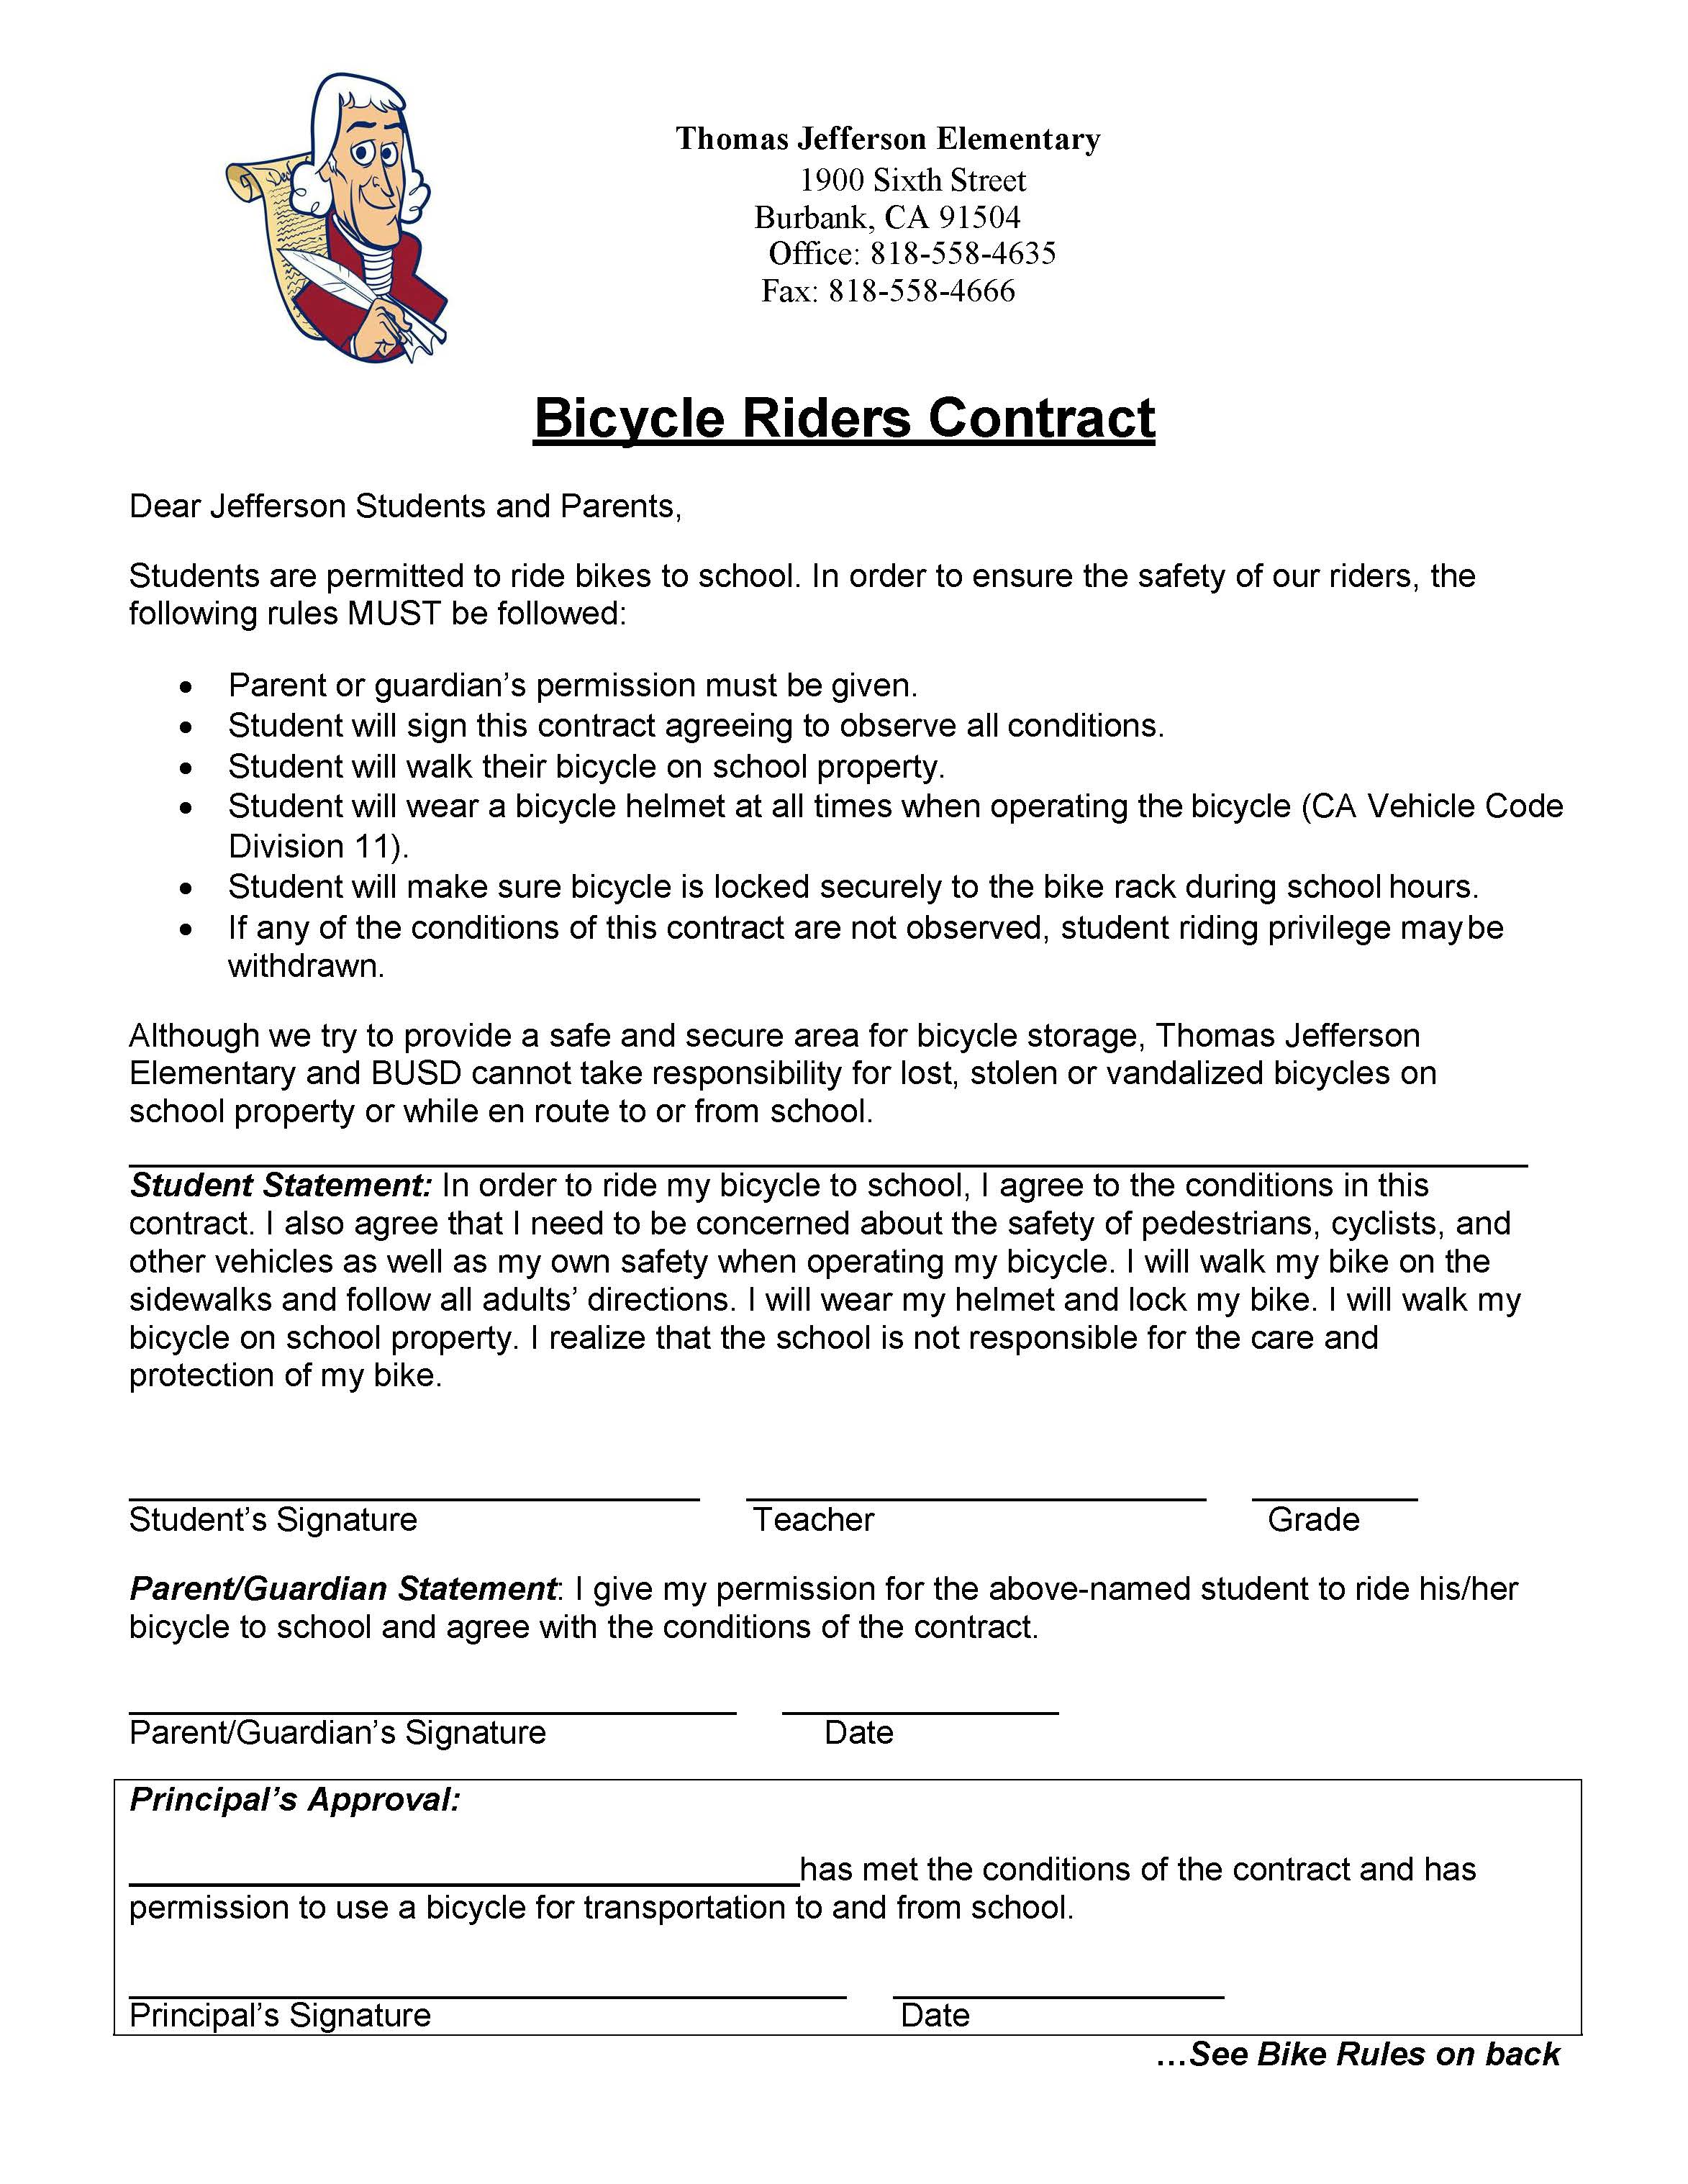 TJ Biking To School Contract